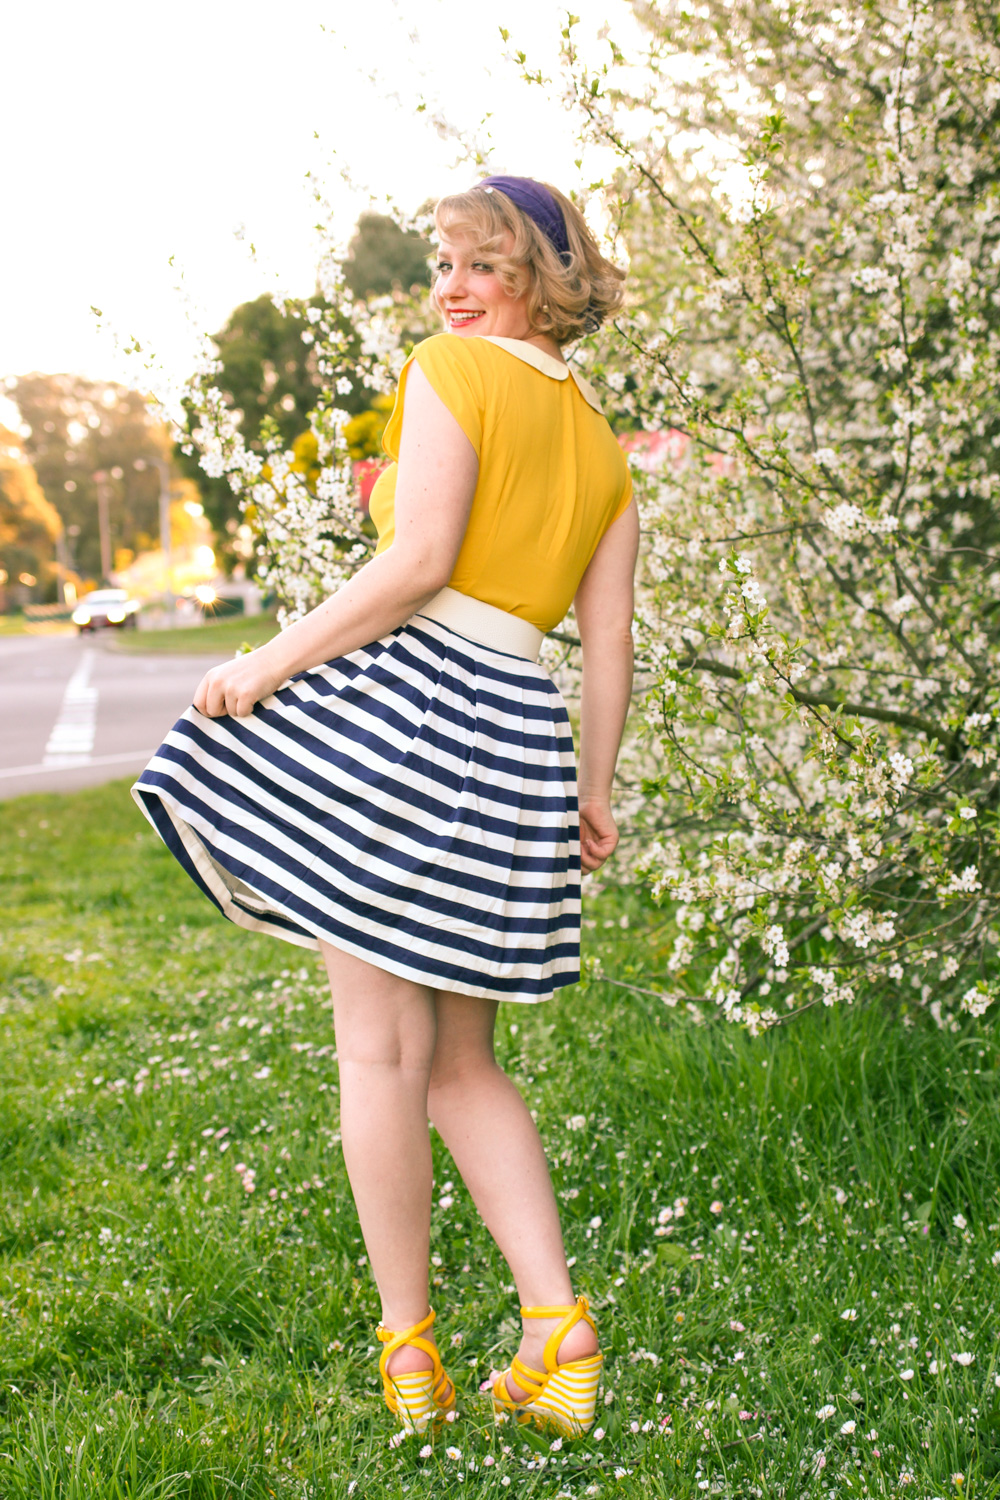 @findingfemme wears Spring yellow peter pan collar Modcloth top and navy striped skirt and yellow sandals